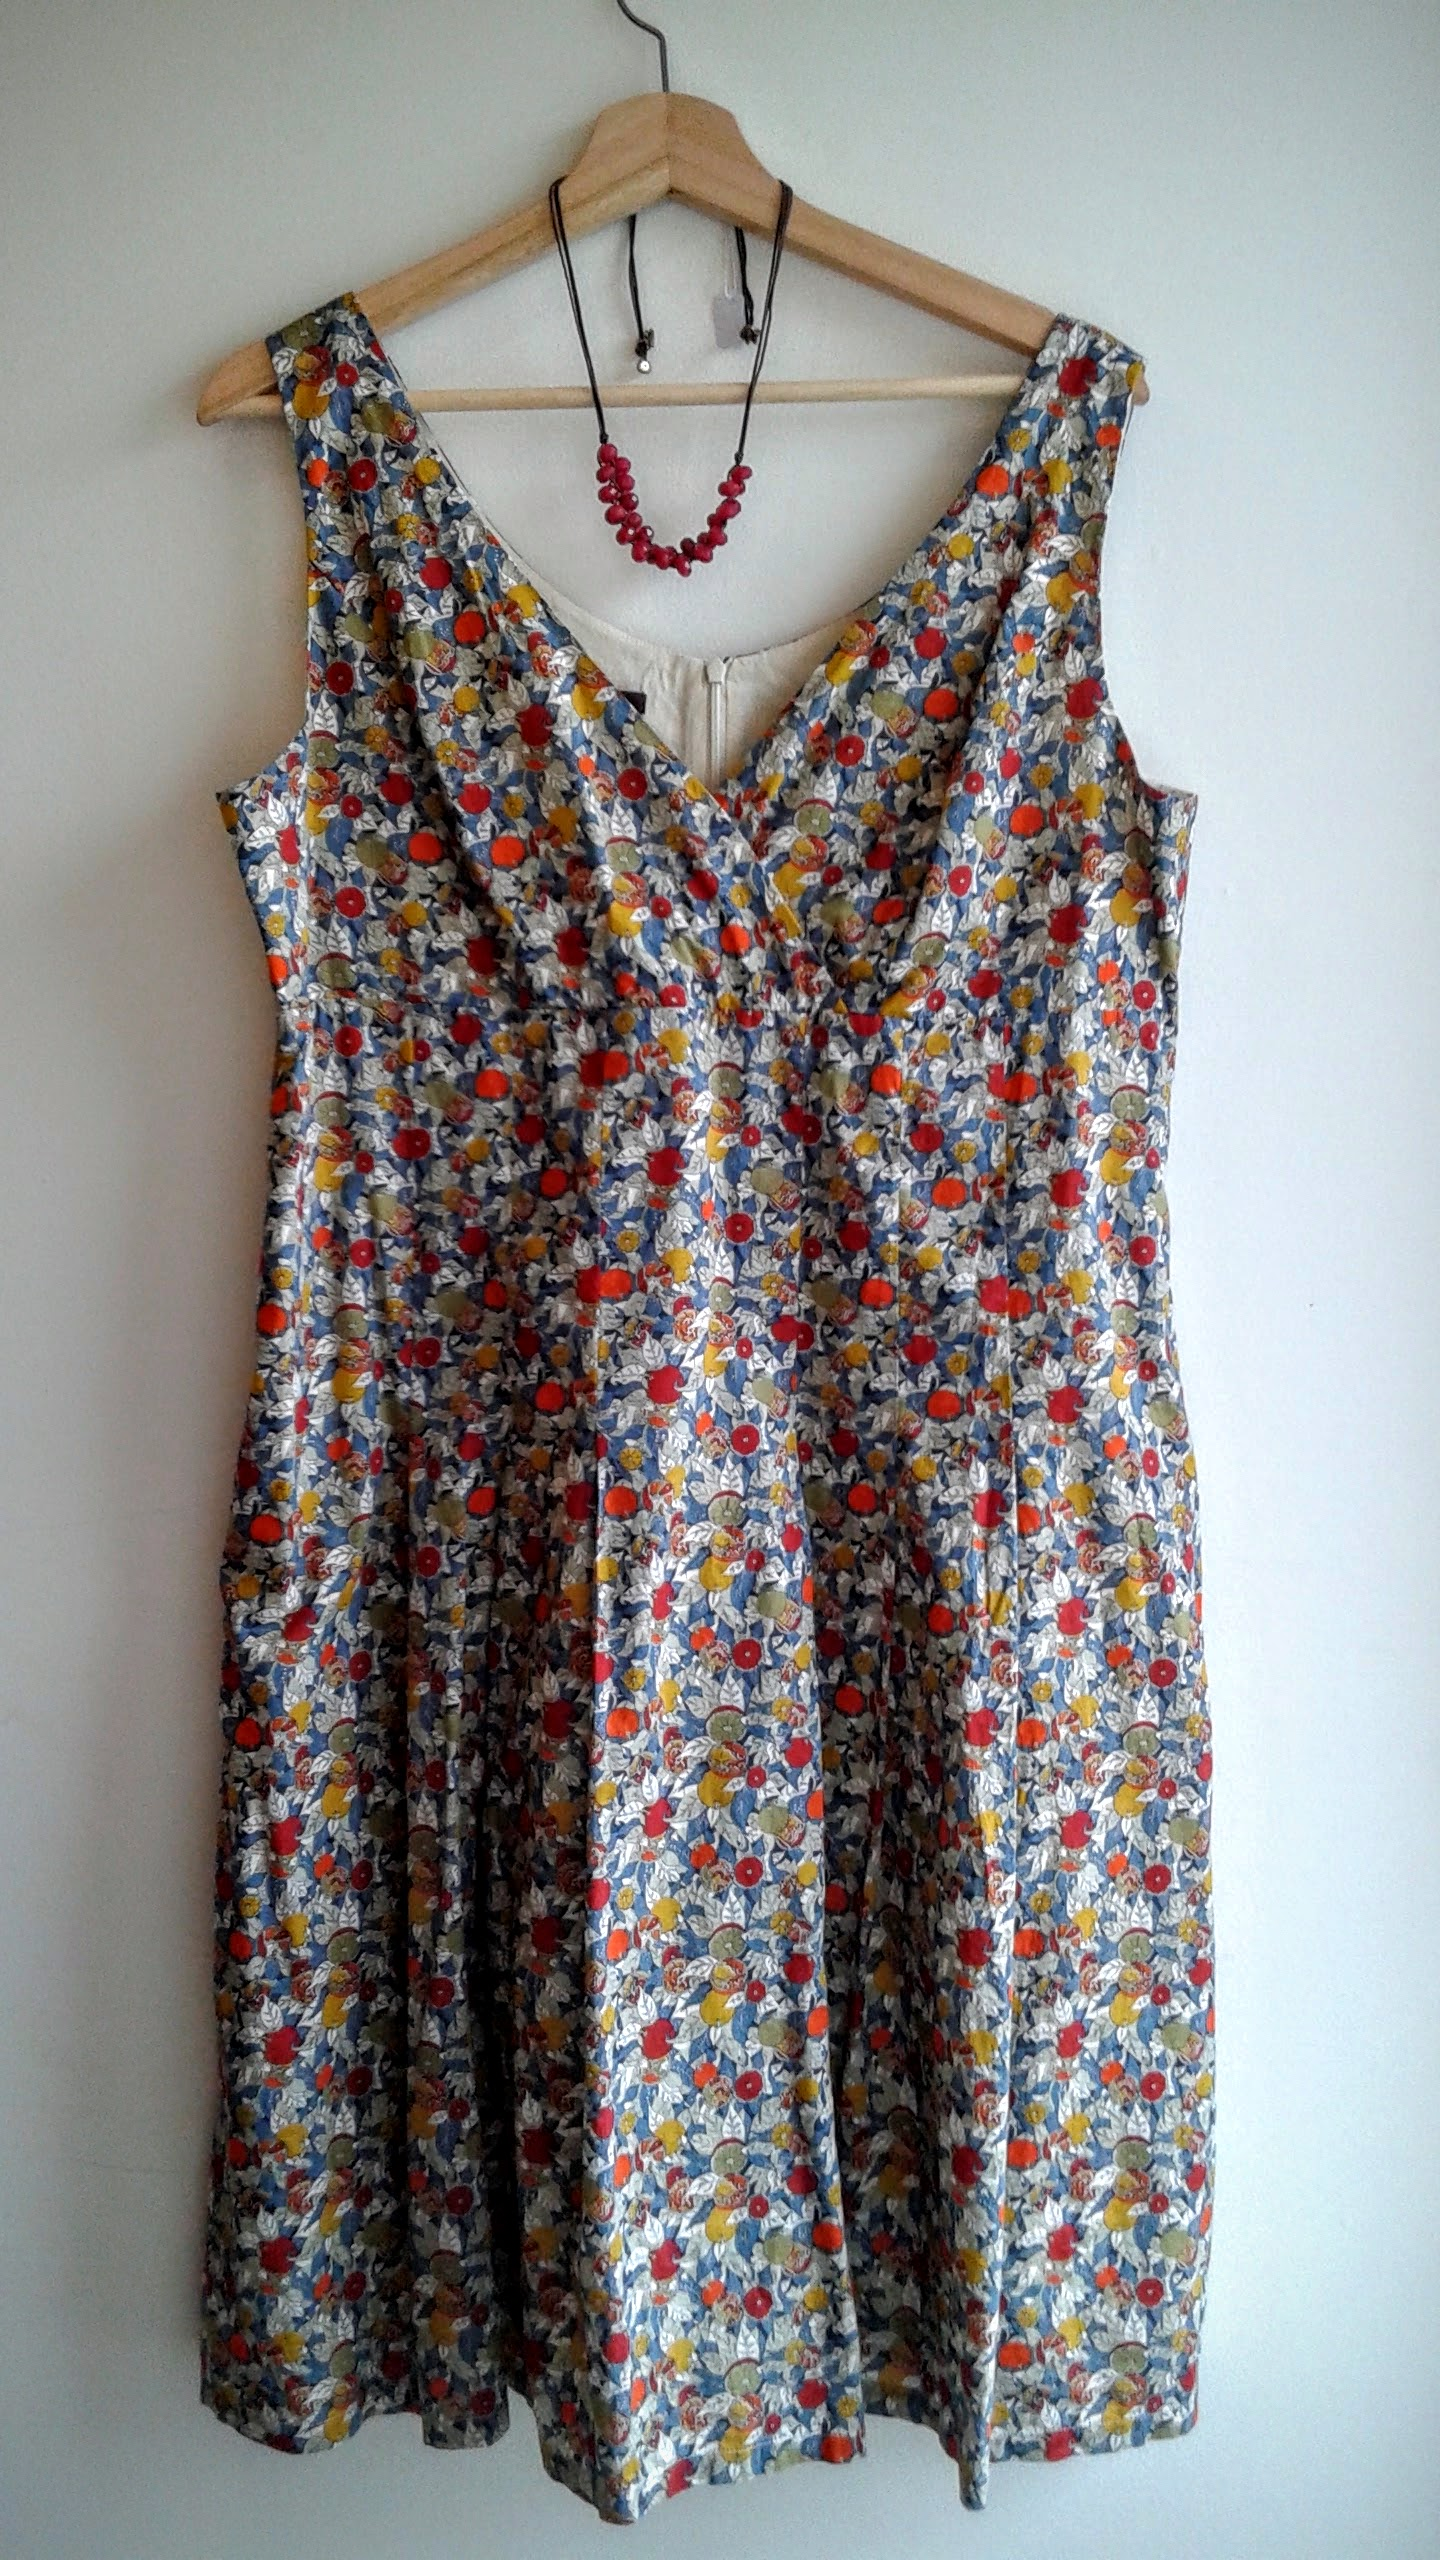 Liberty Art Fabrics dress; Size 14, $38; Fossil necklace, $38